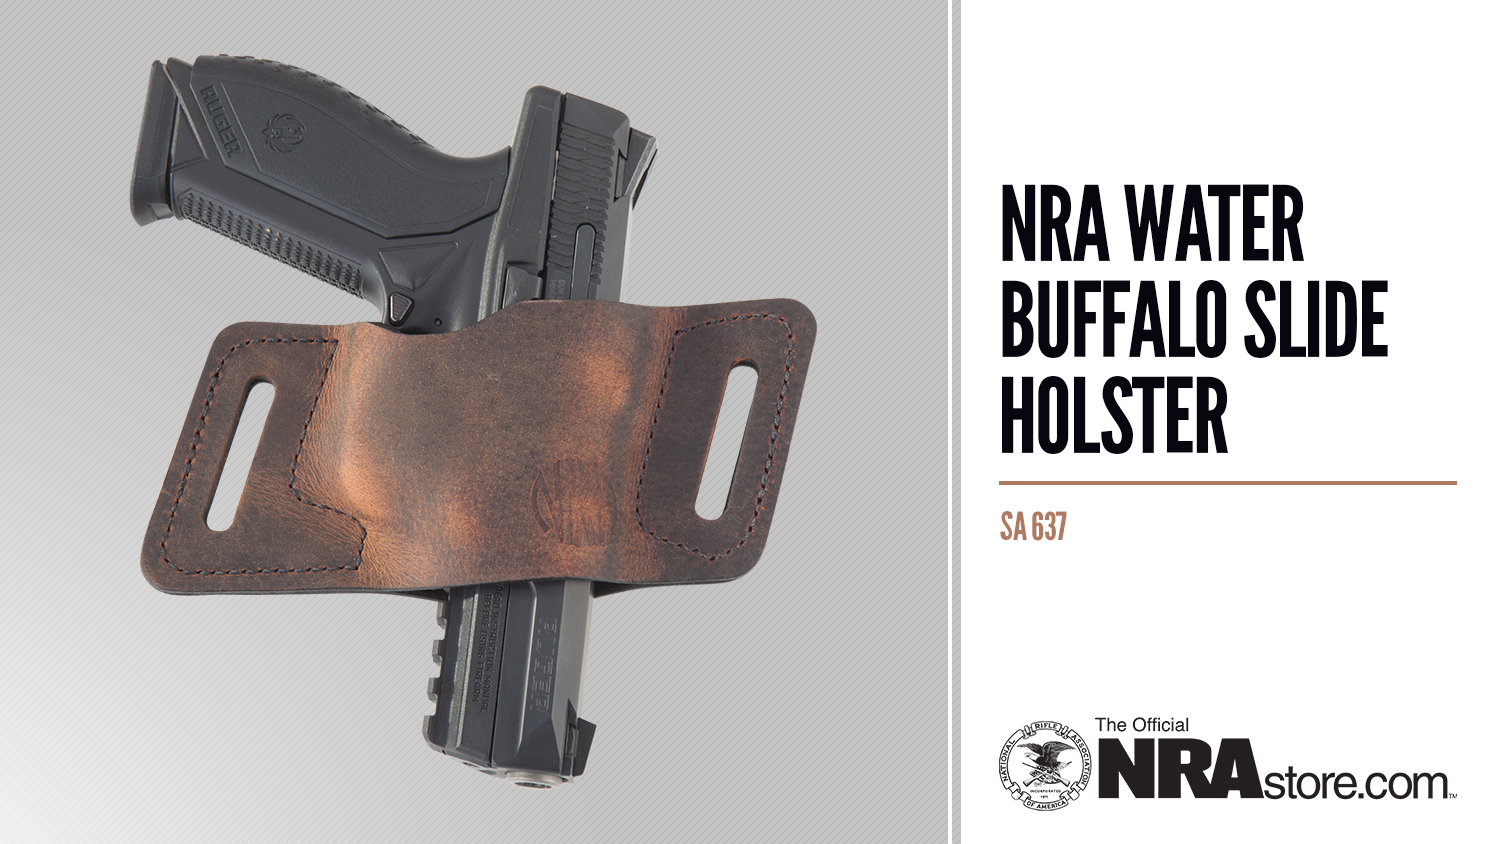 NRAstore Product Highlight: Water Buffalo Slide Holster